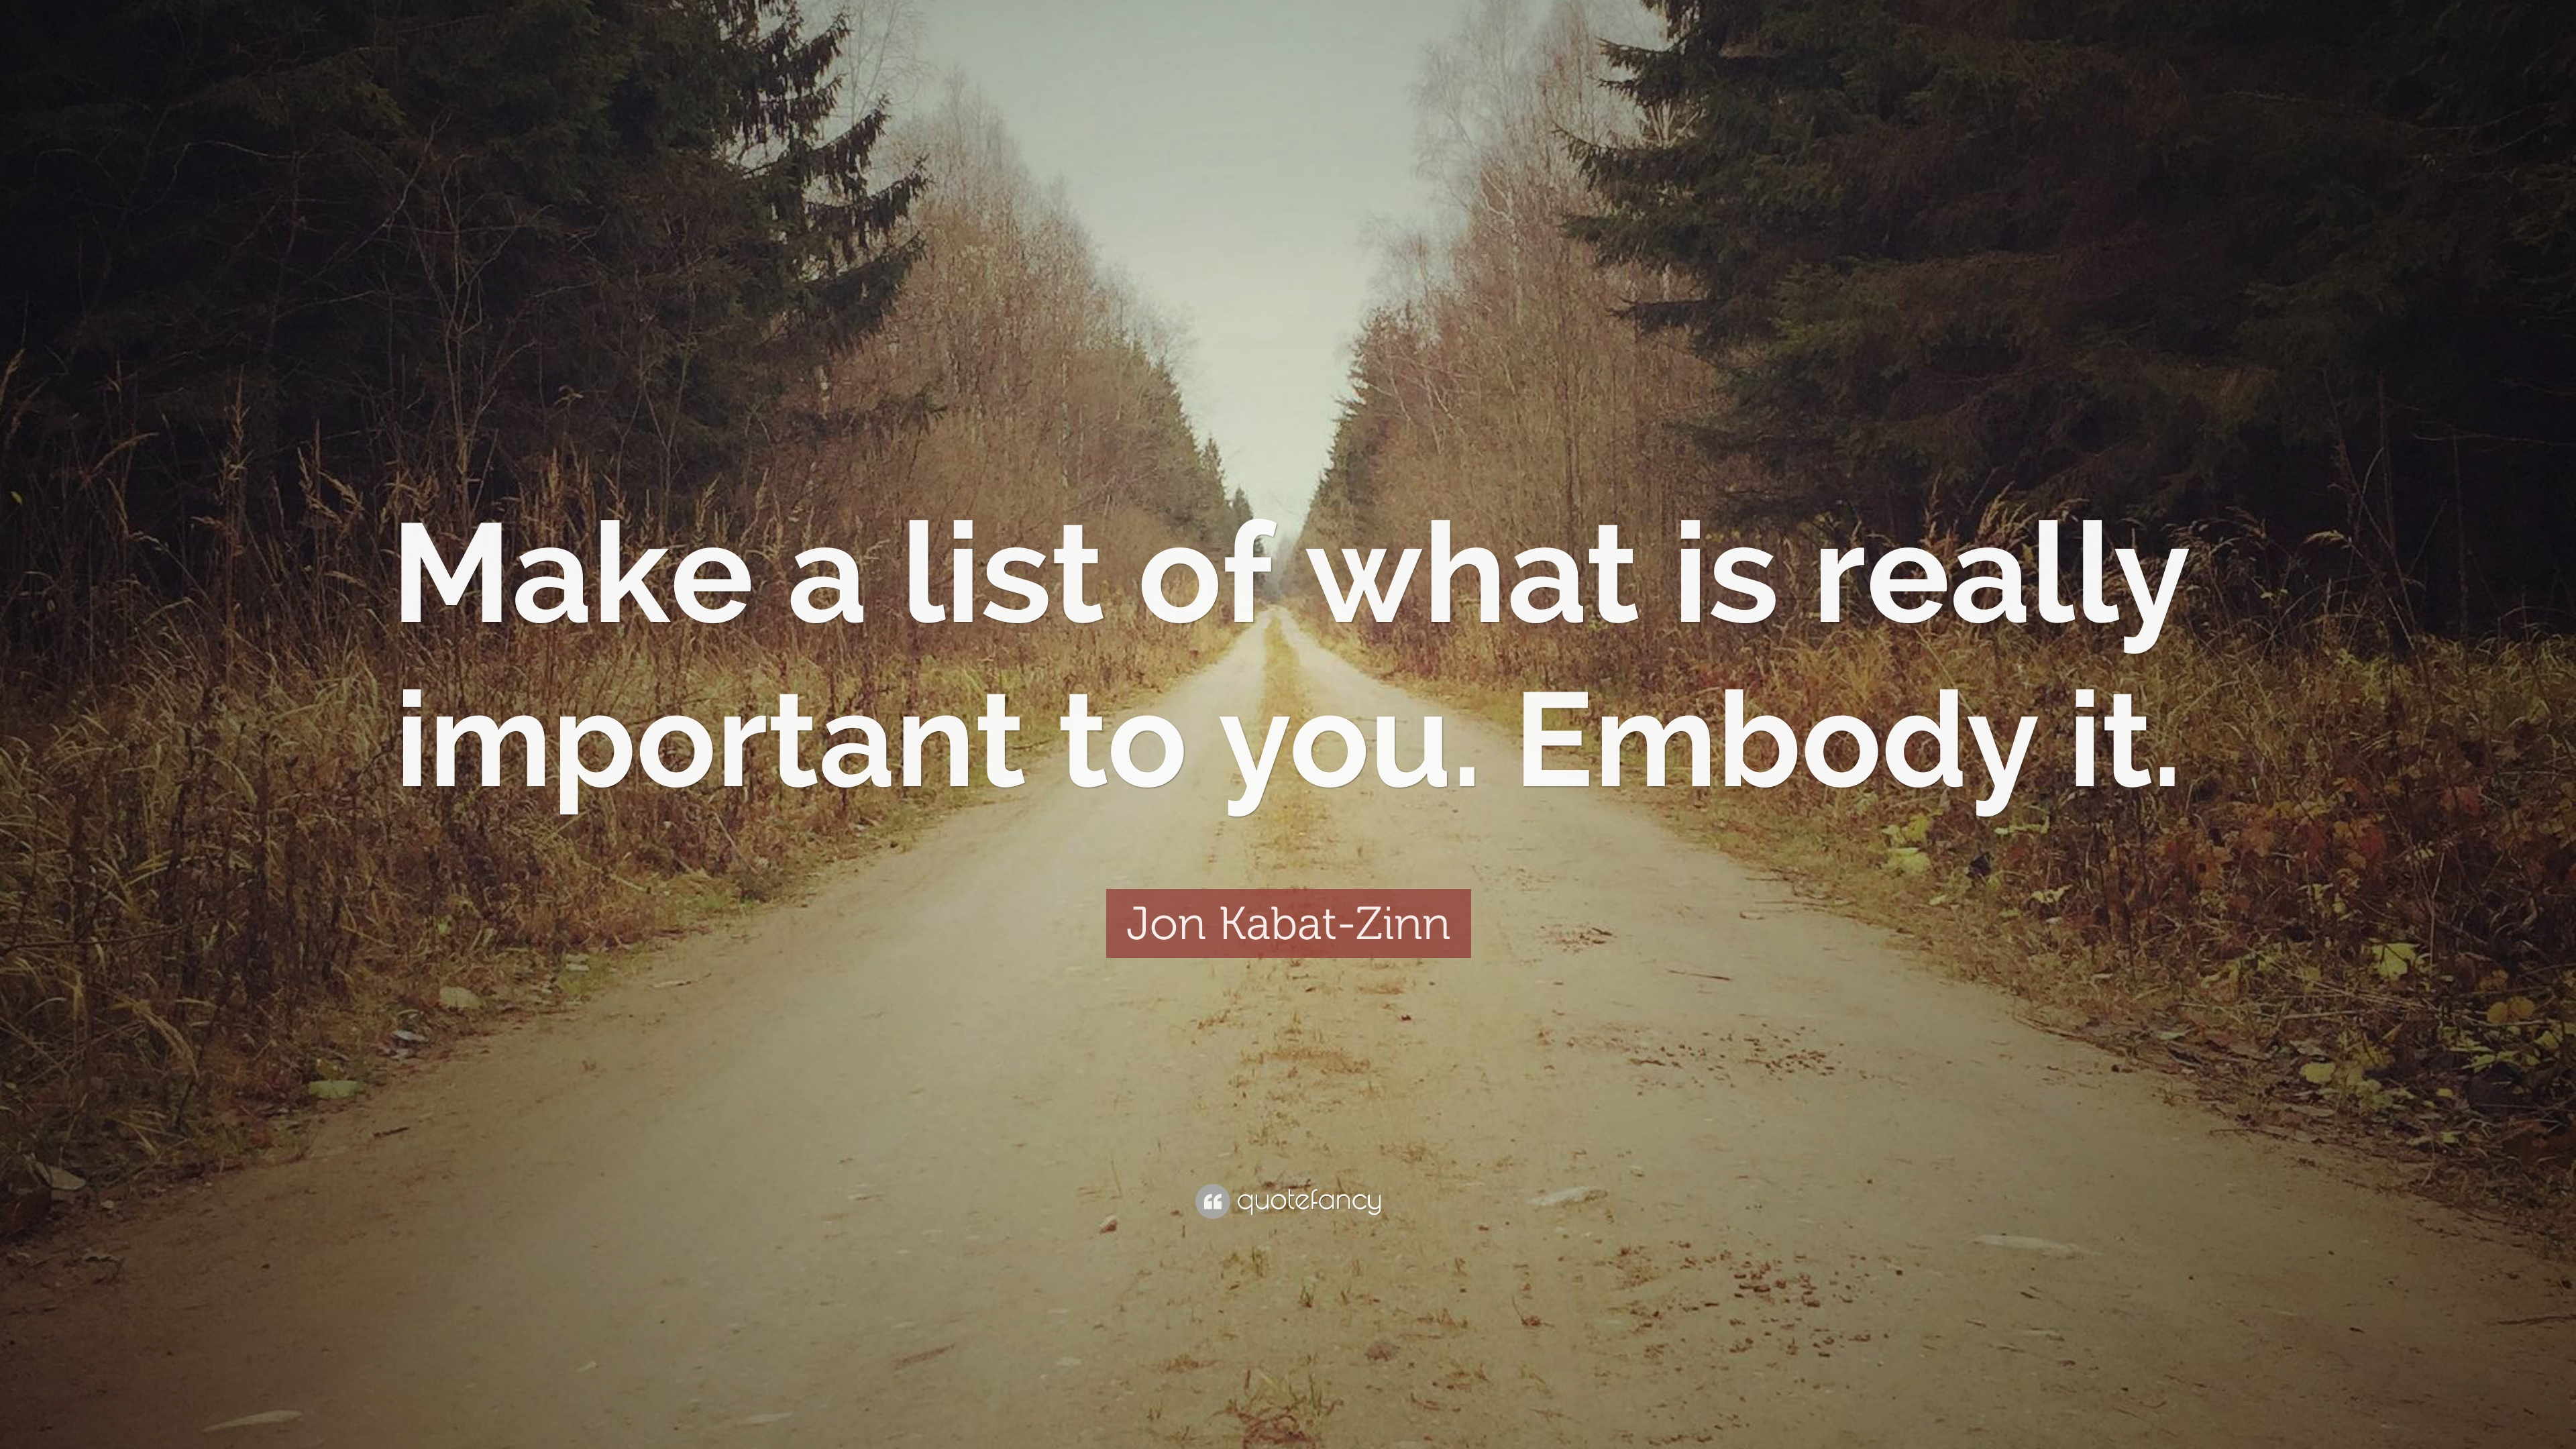 jon kabat zinn quote make a list of what is really important to